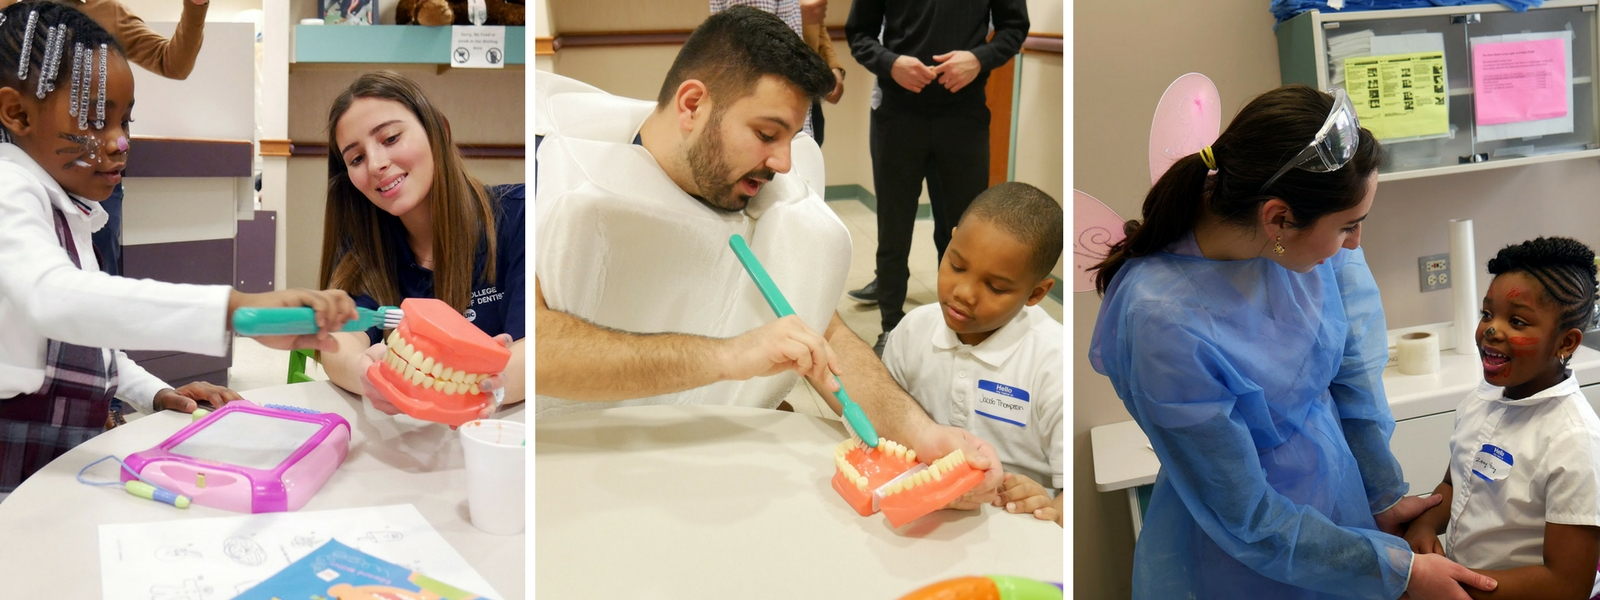 University of Illinois Chicago Give Kids A Smile Day